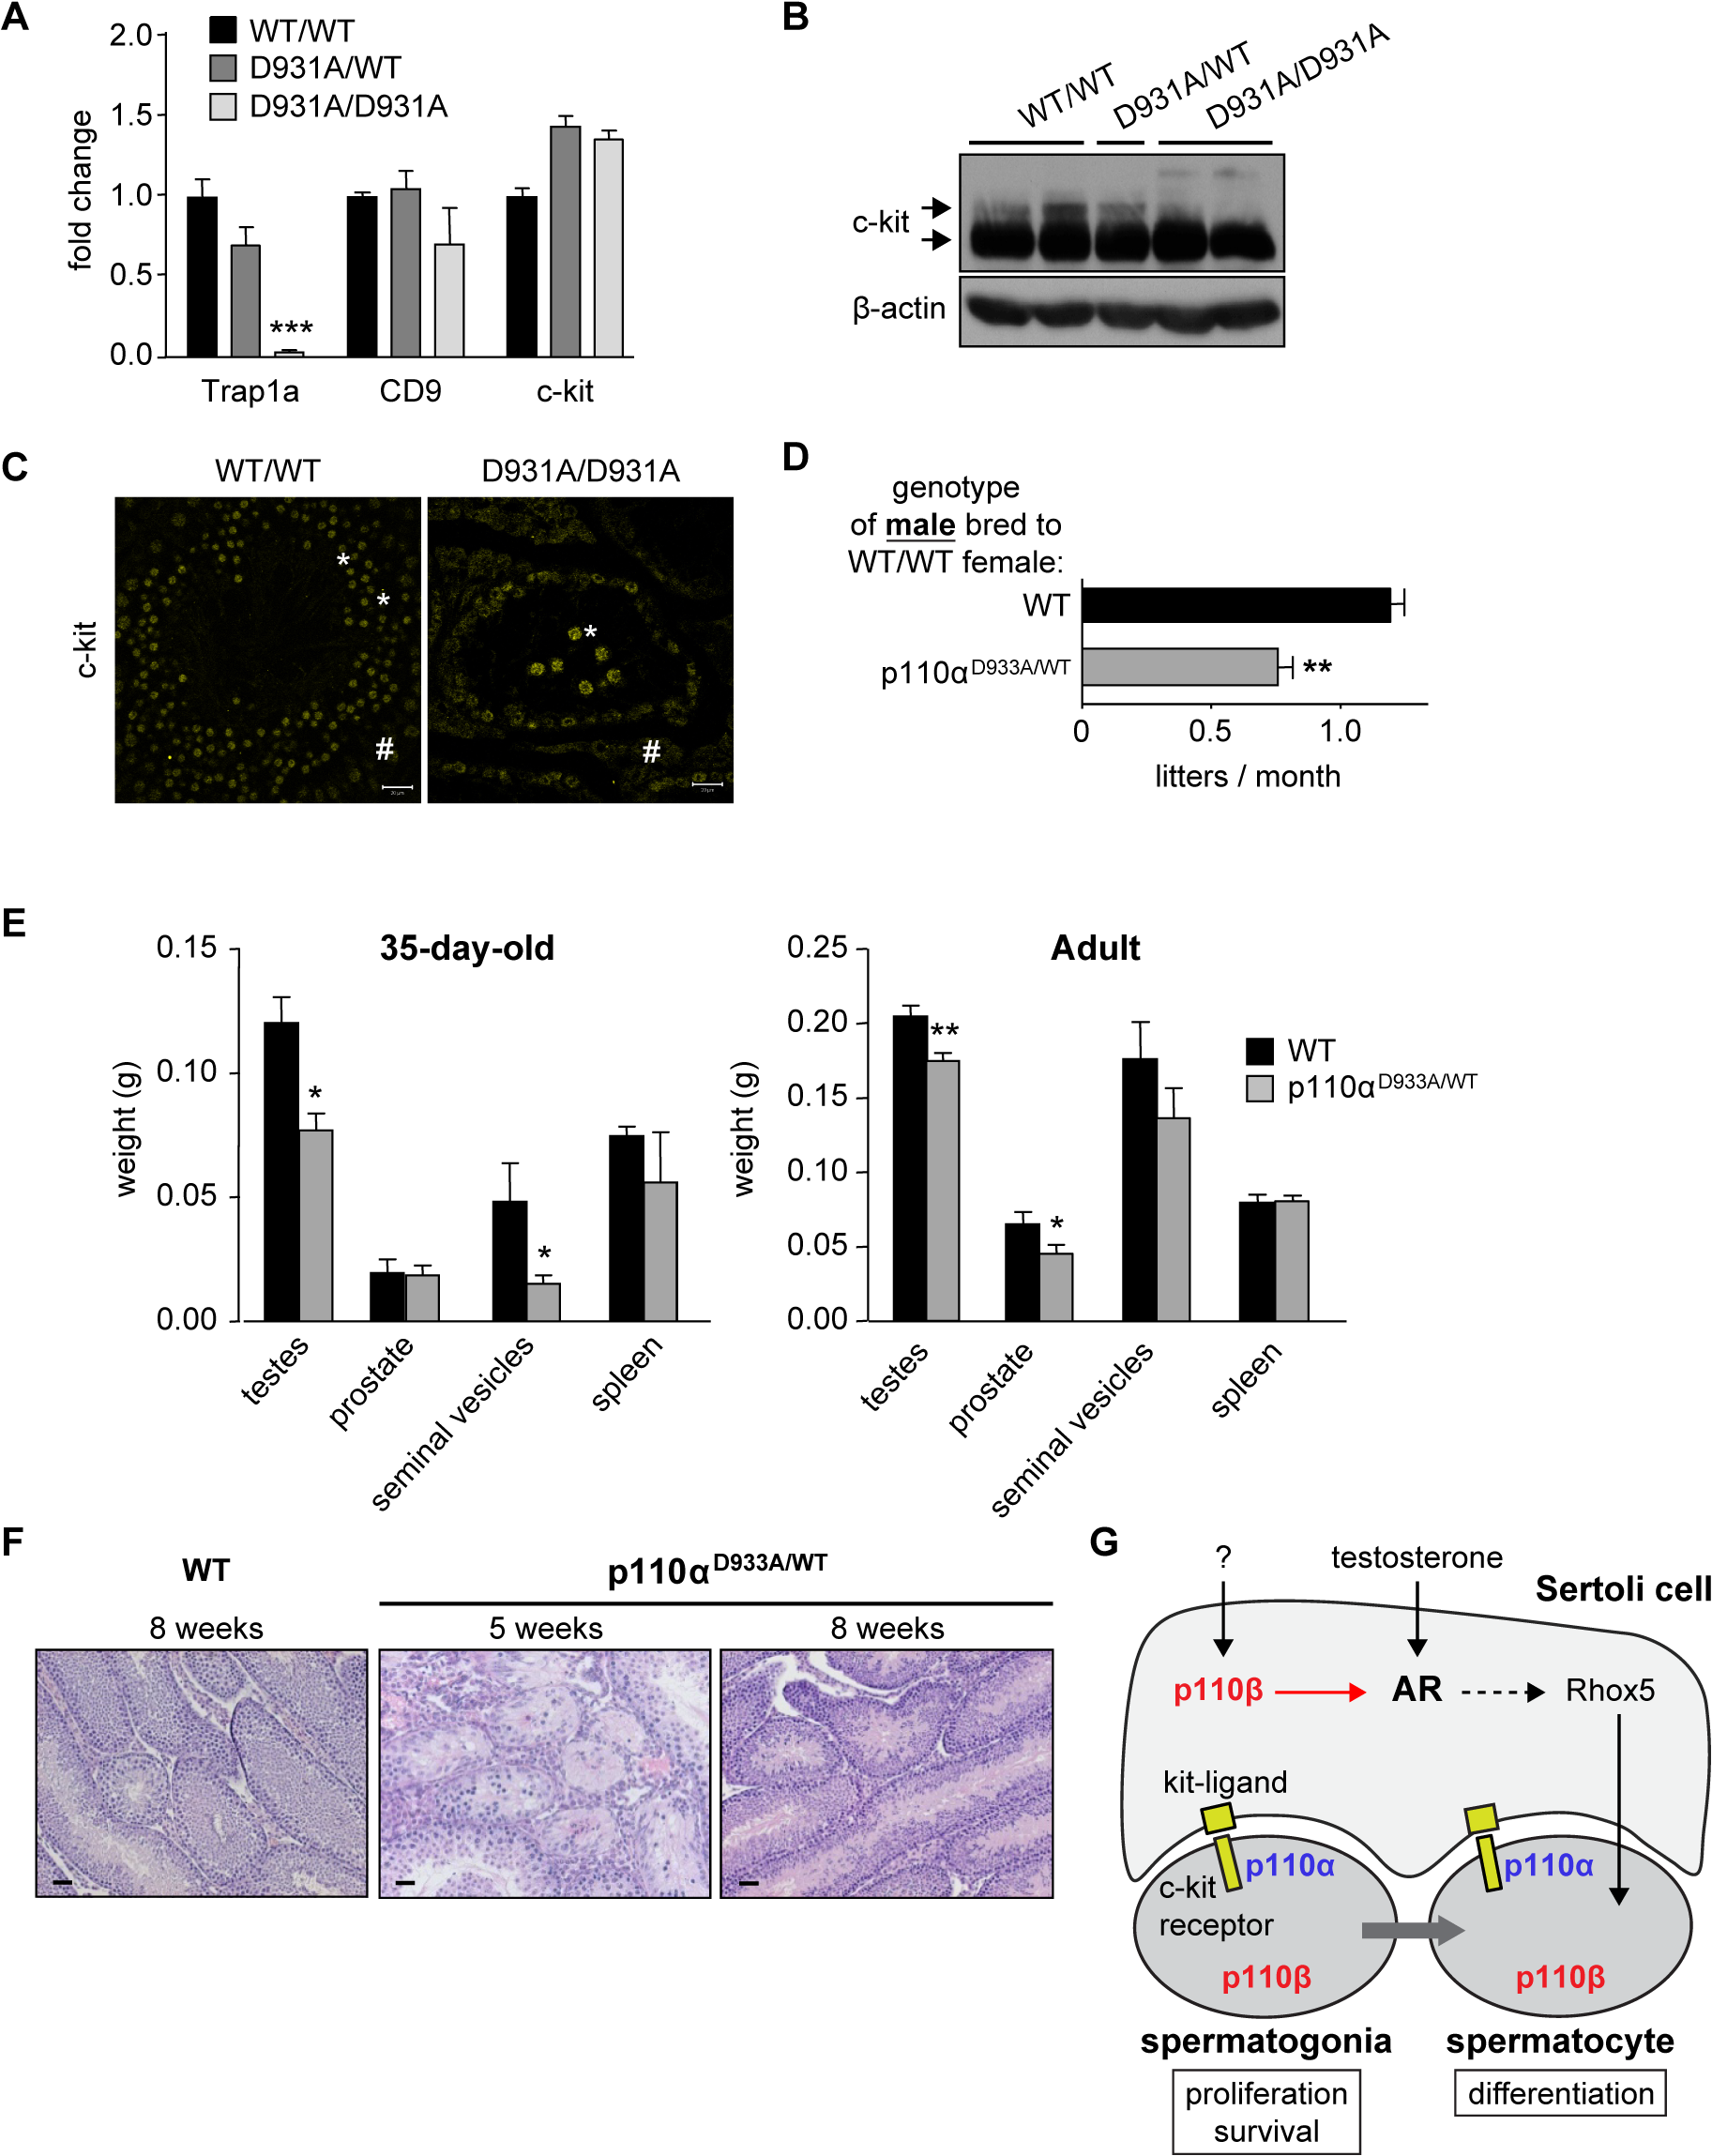 p110α couples to c-kit in testes and regulates male fertility.